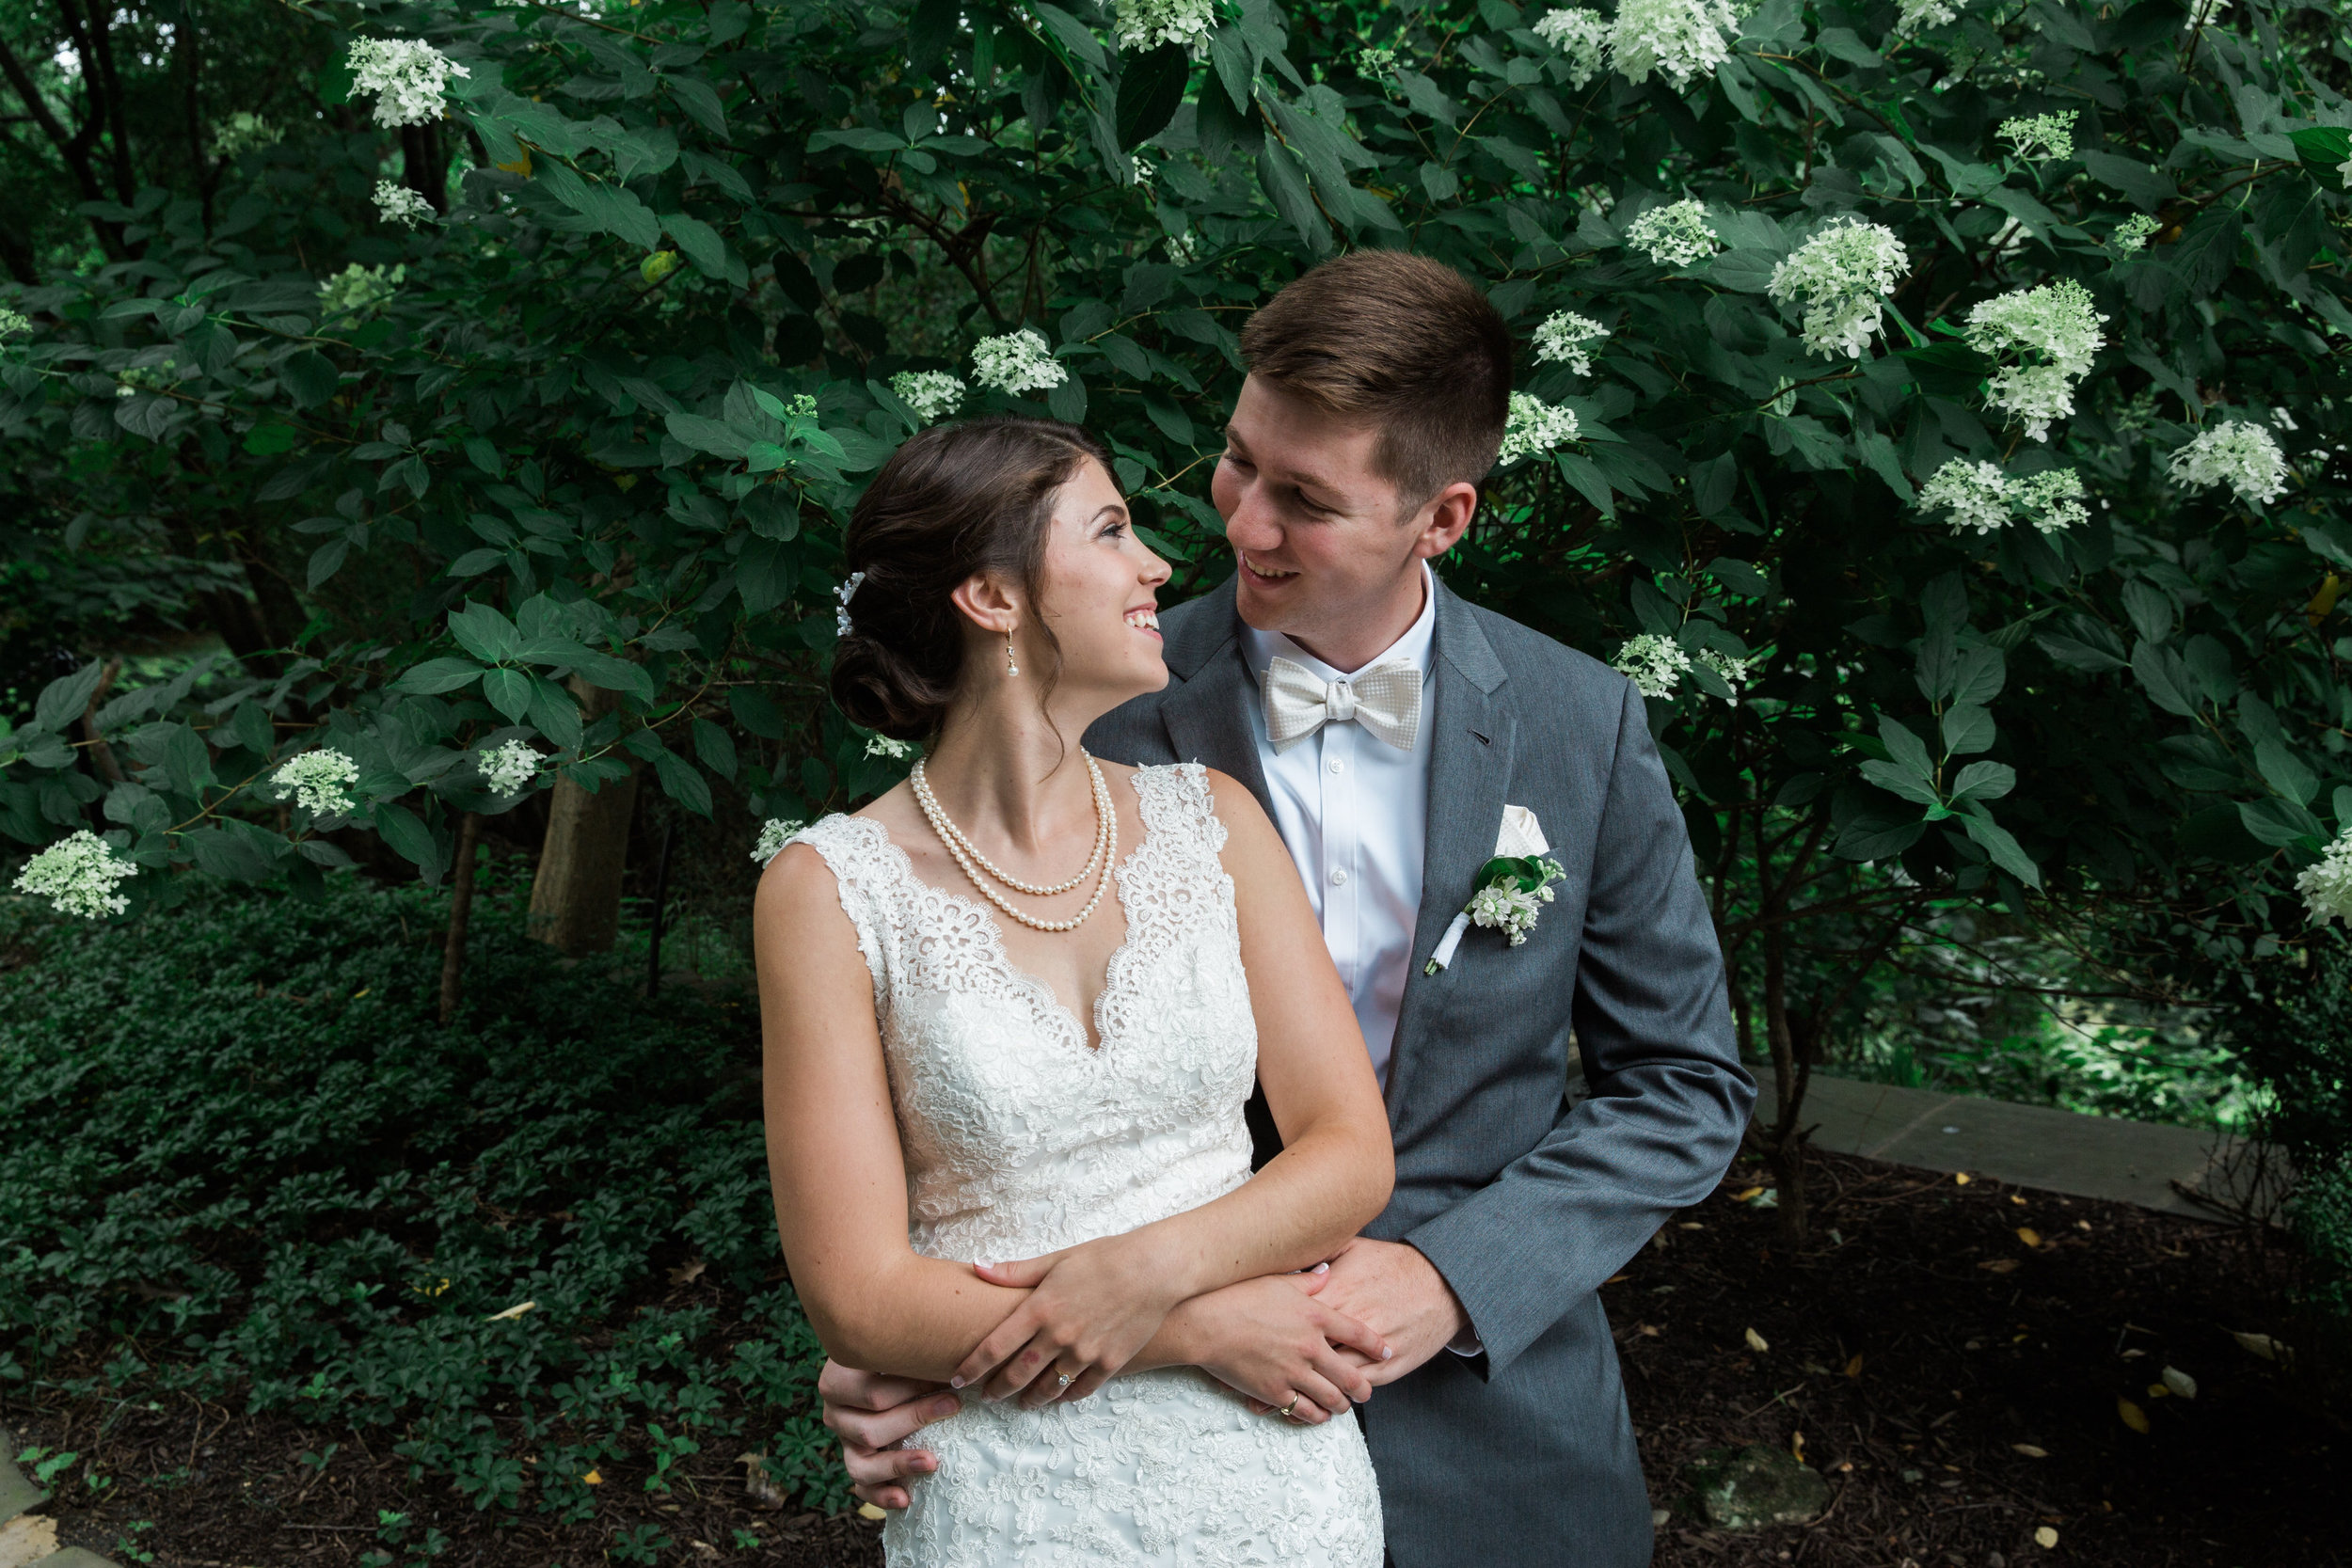 Top Wedding Photography in Howard County Maryland by Megapixels Media.jpeg